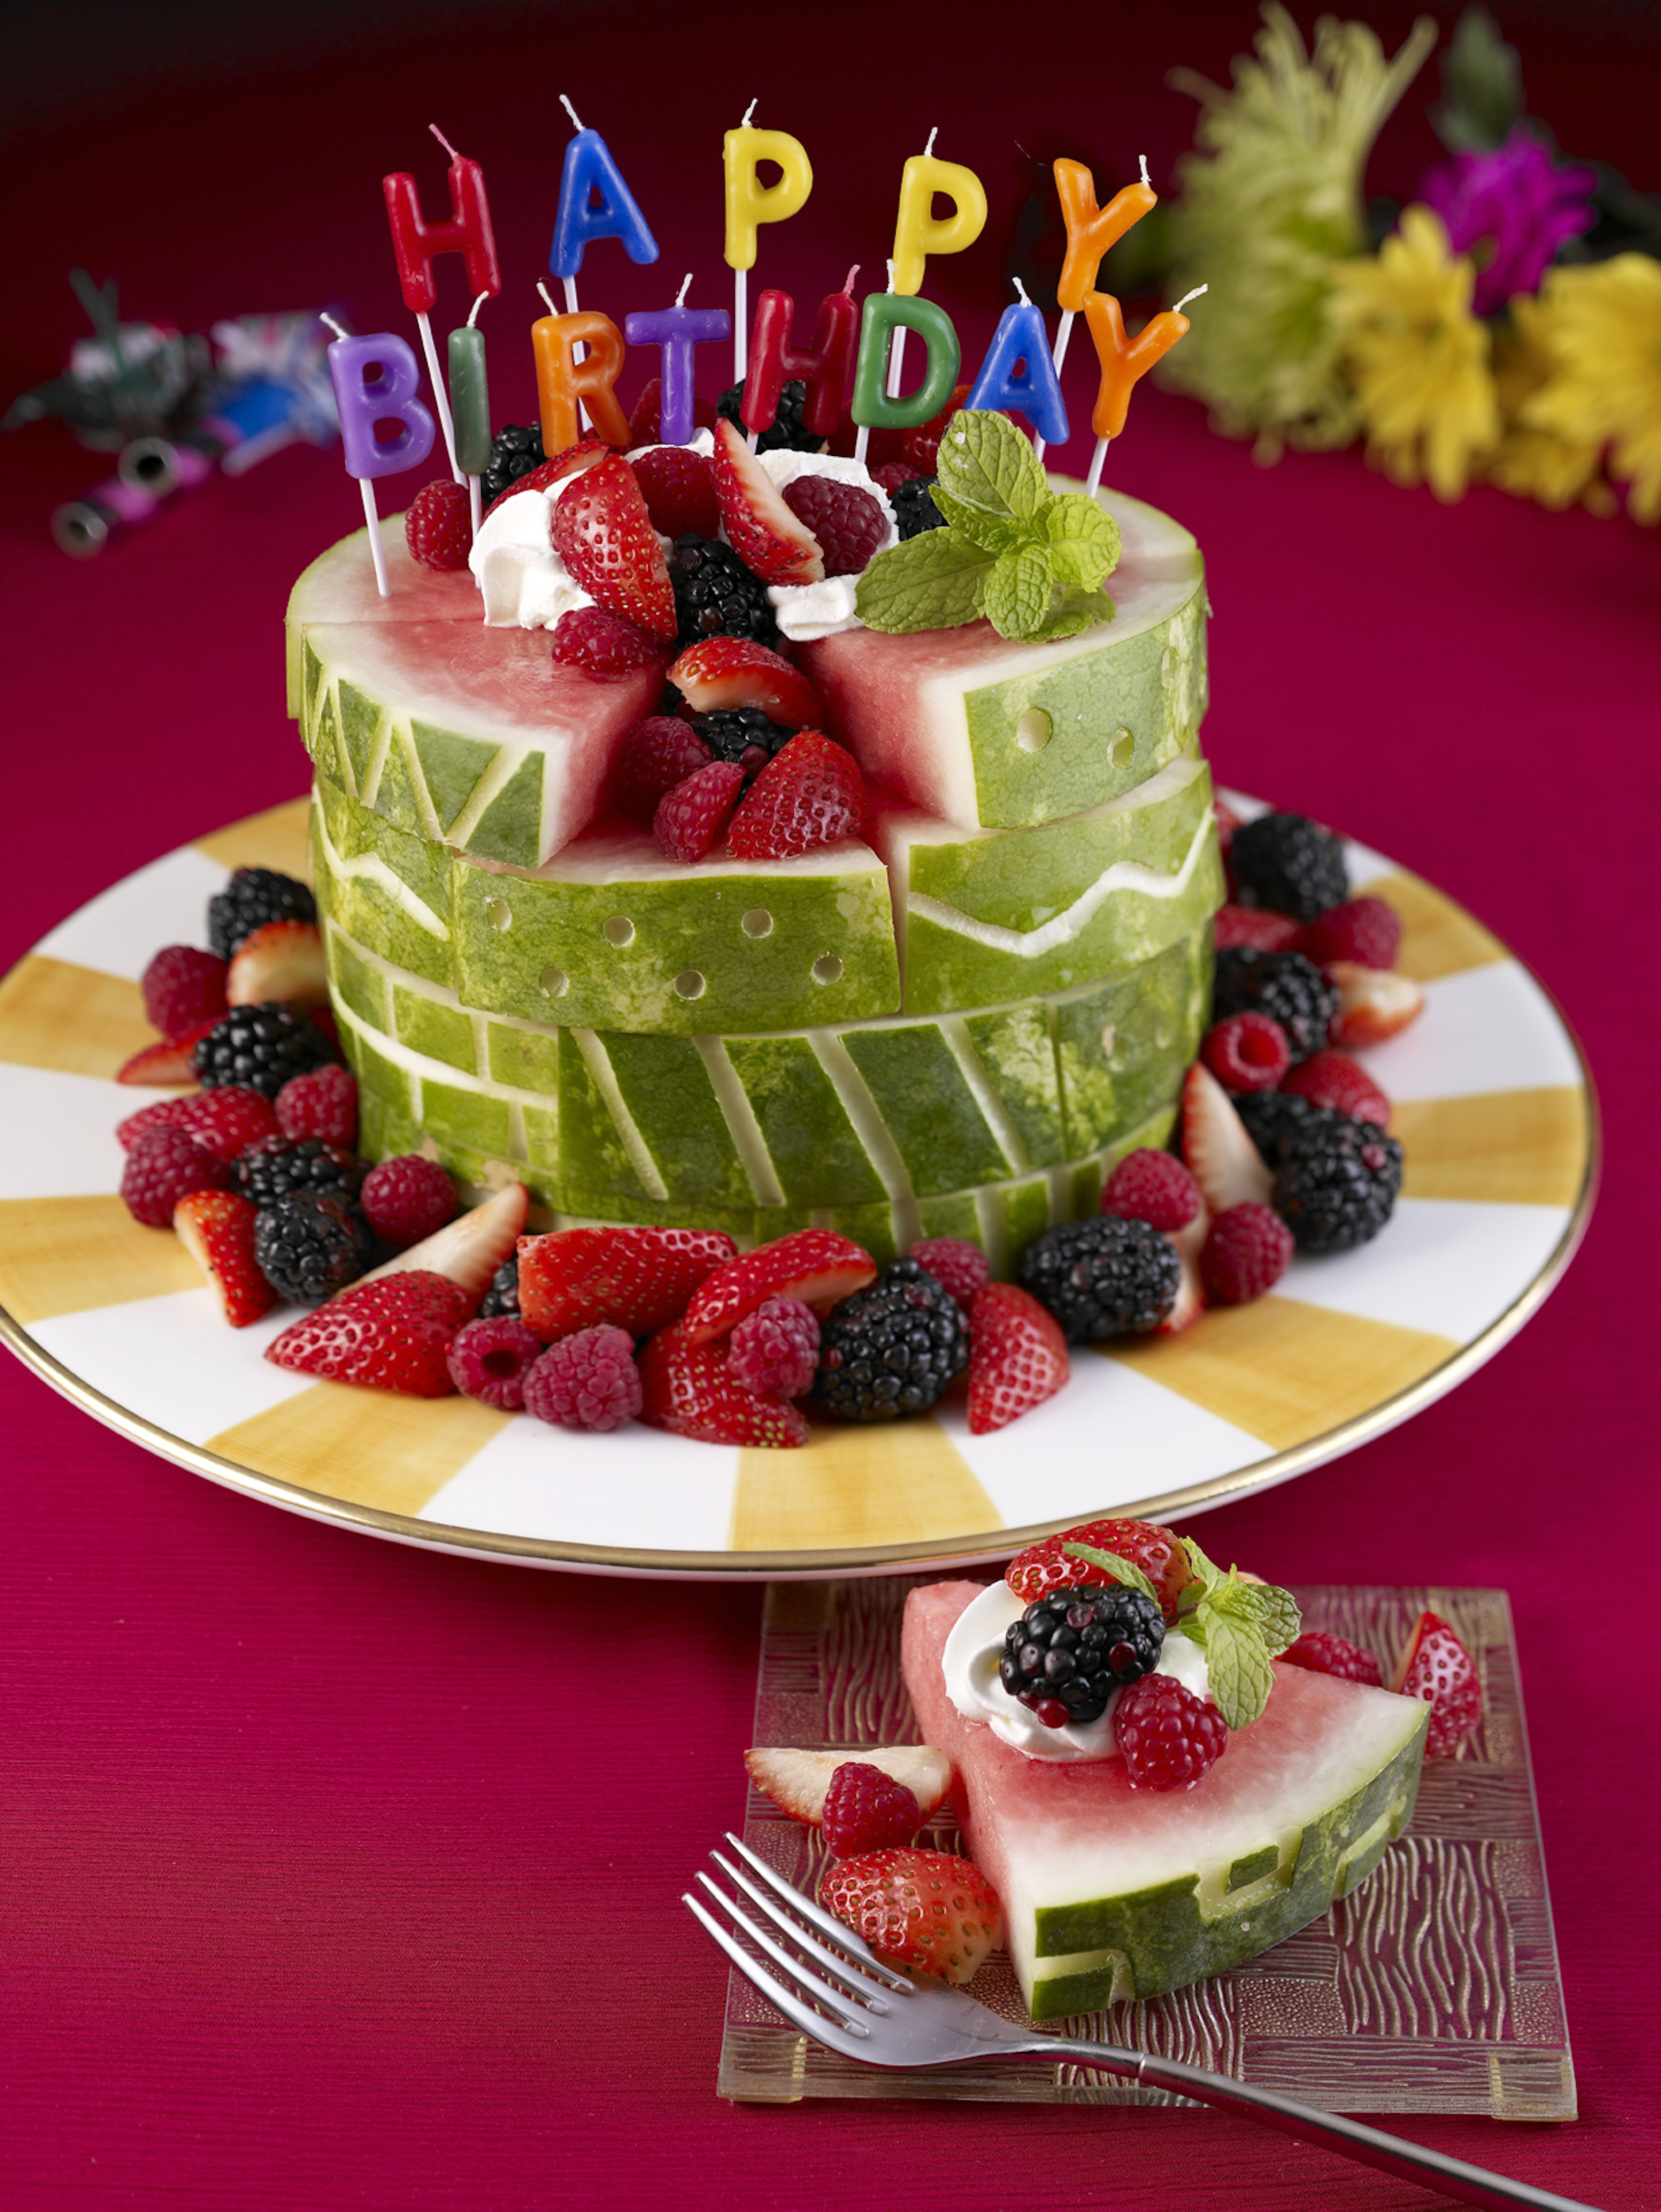 Birthday Cake Alternatives Watermelon Board What A Great Alternative To